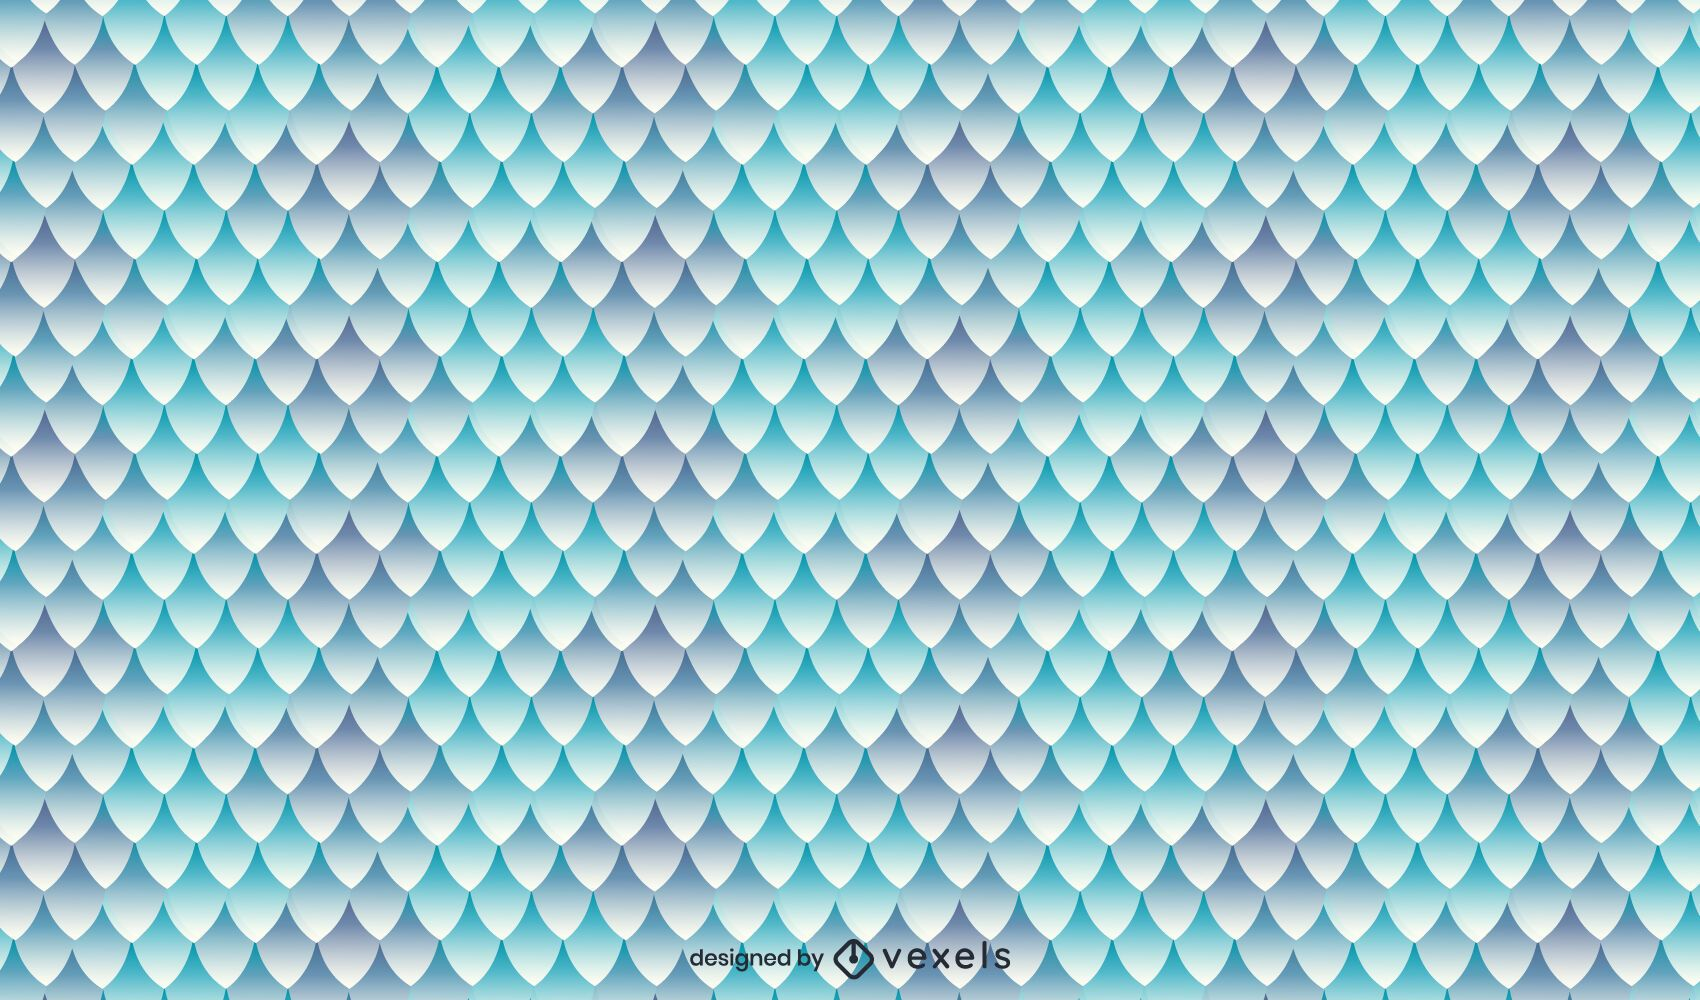 Dragon scales texture pattern